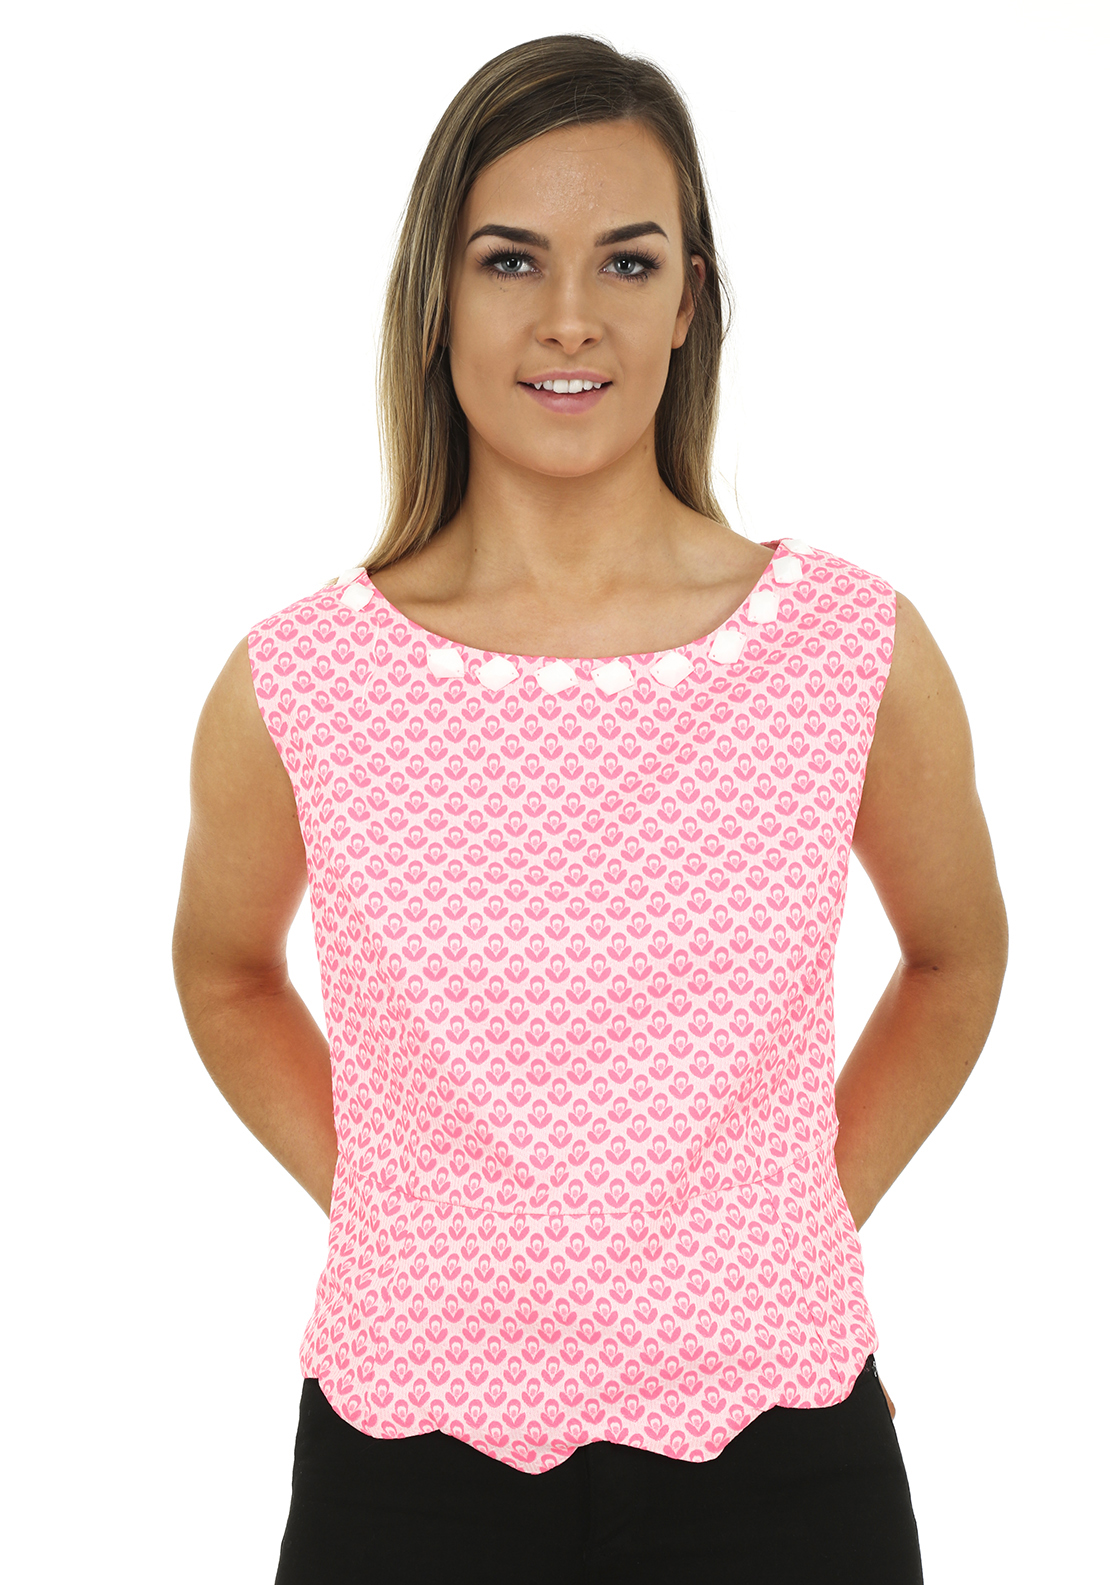 Daisy May Retro Print Embellished Crop Top, Pink